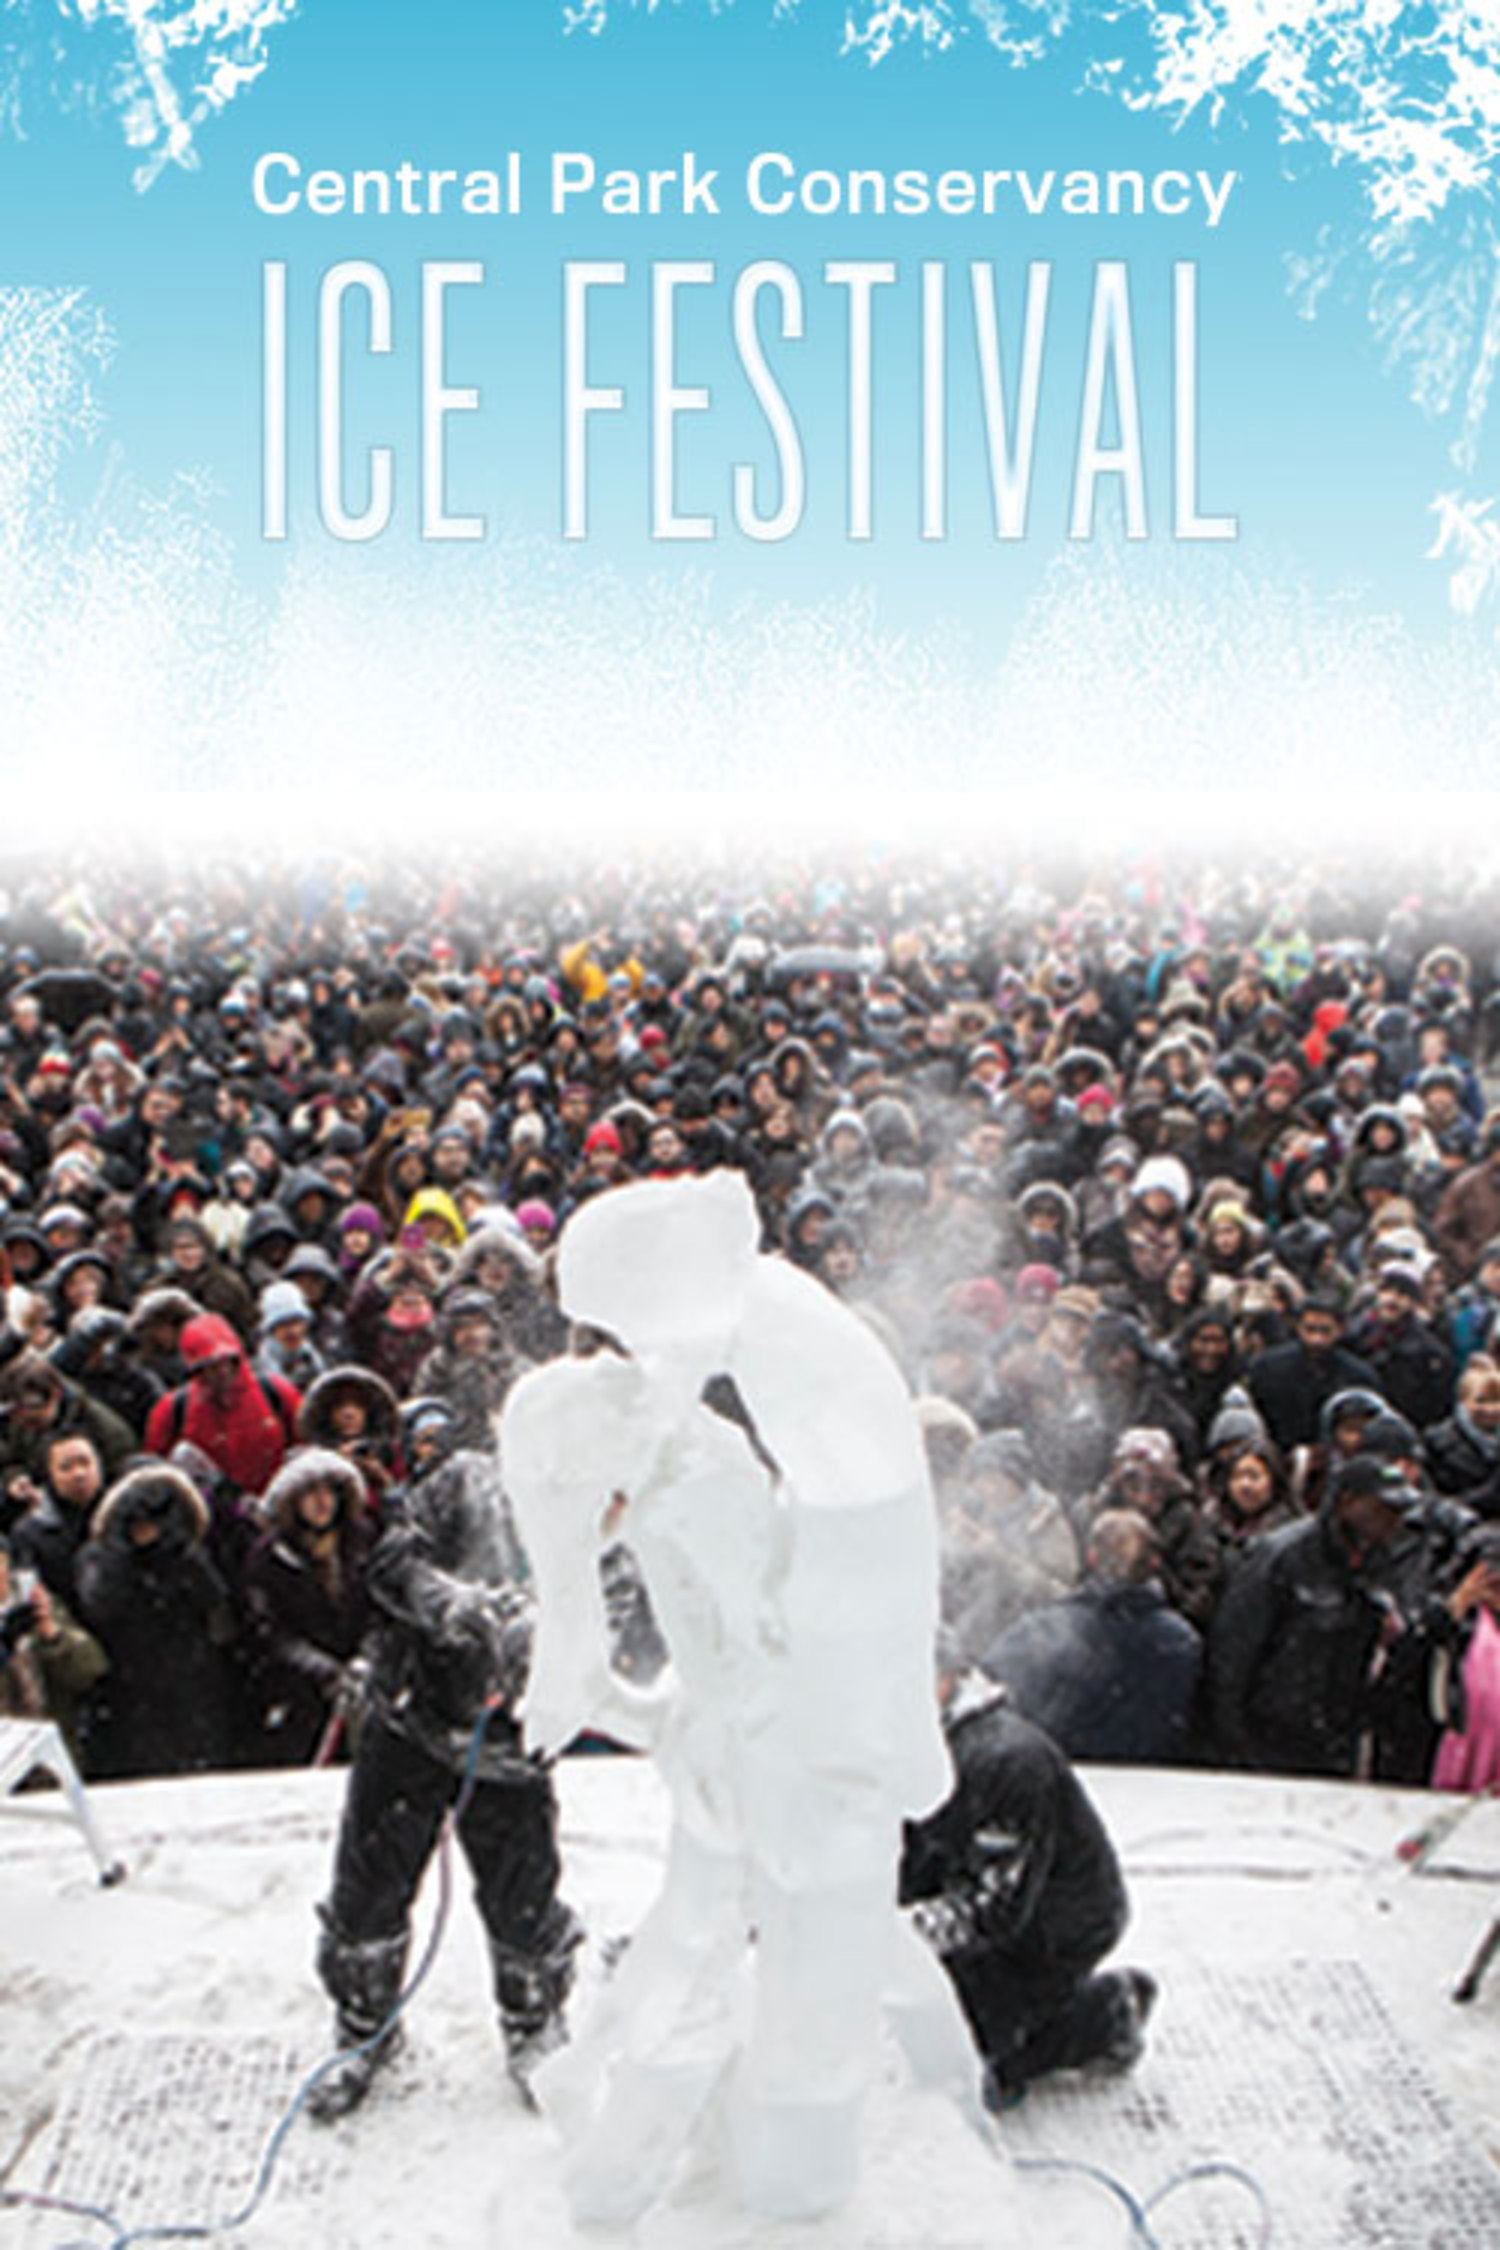 See The Mesmerizing Ice Exhibition at Central Park This Weekend